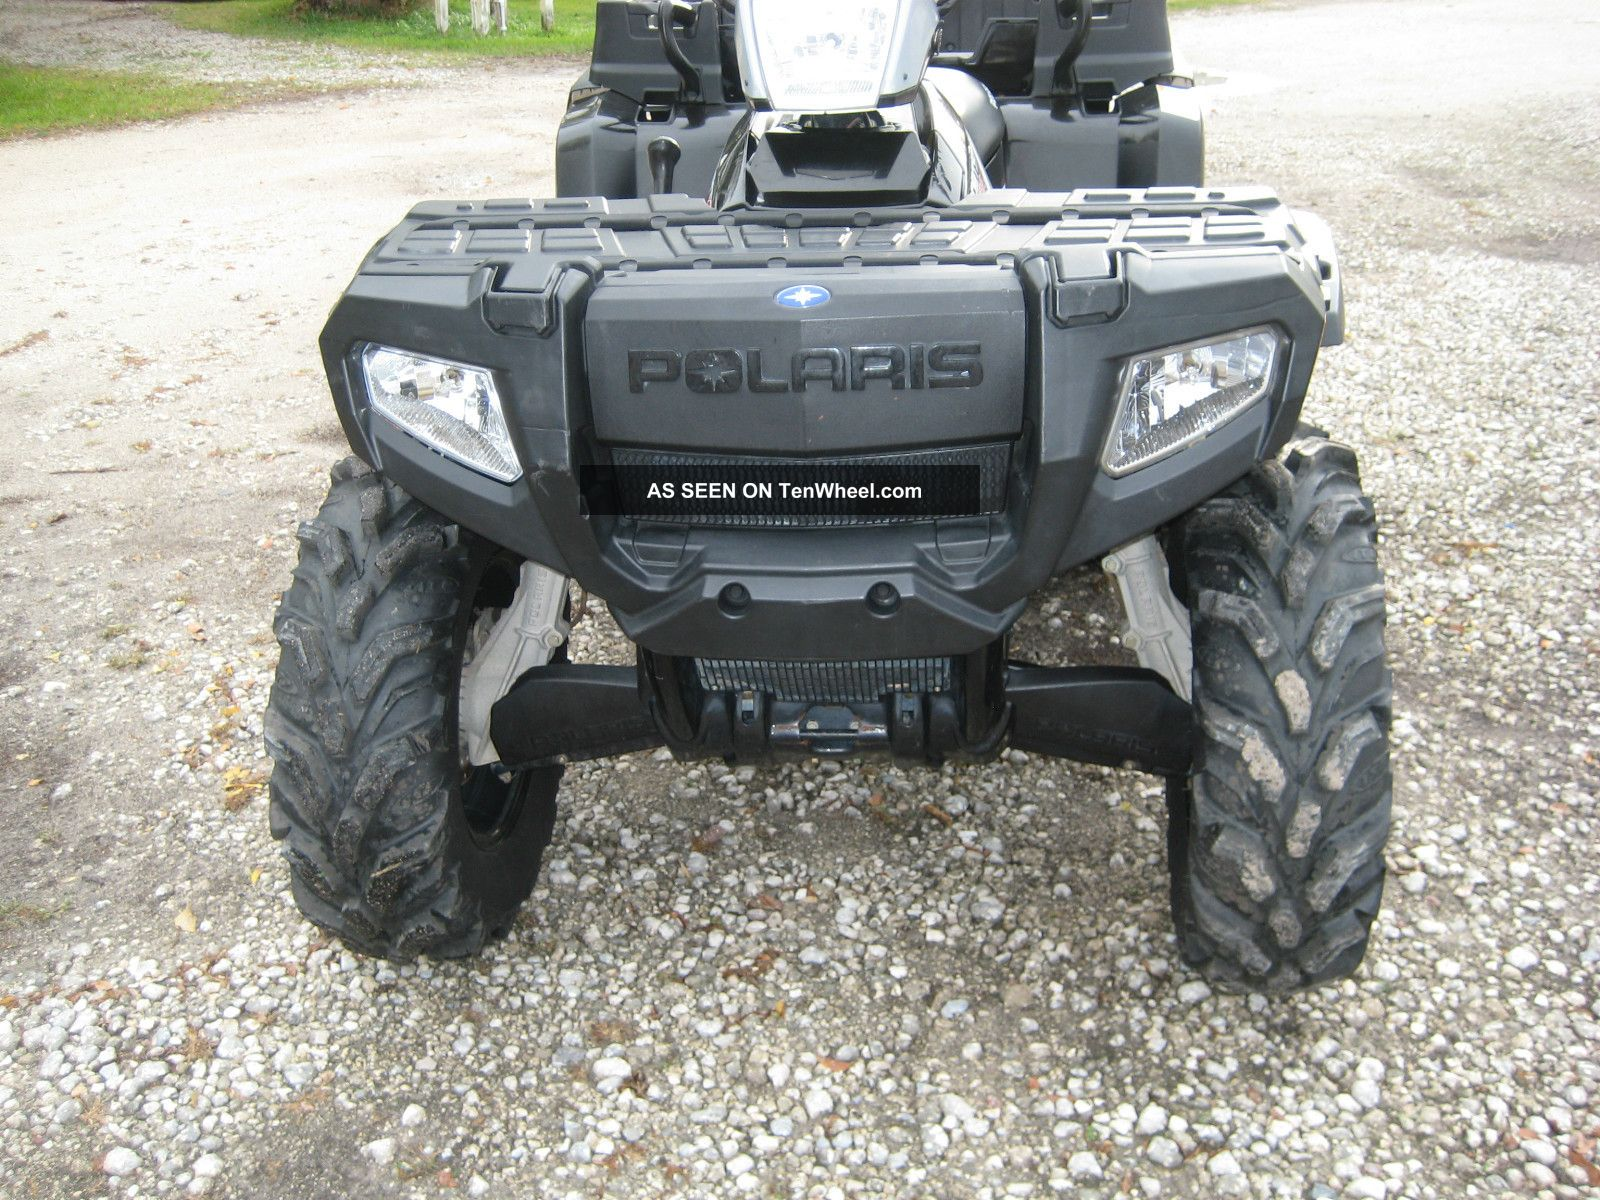 2007 polaris sportsman 800 stealth edition. Black Bedroom Furniture Sets. Home Design Ideas